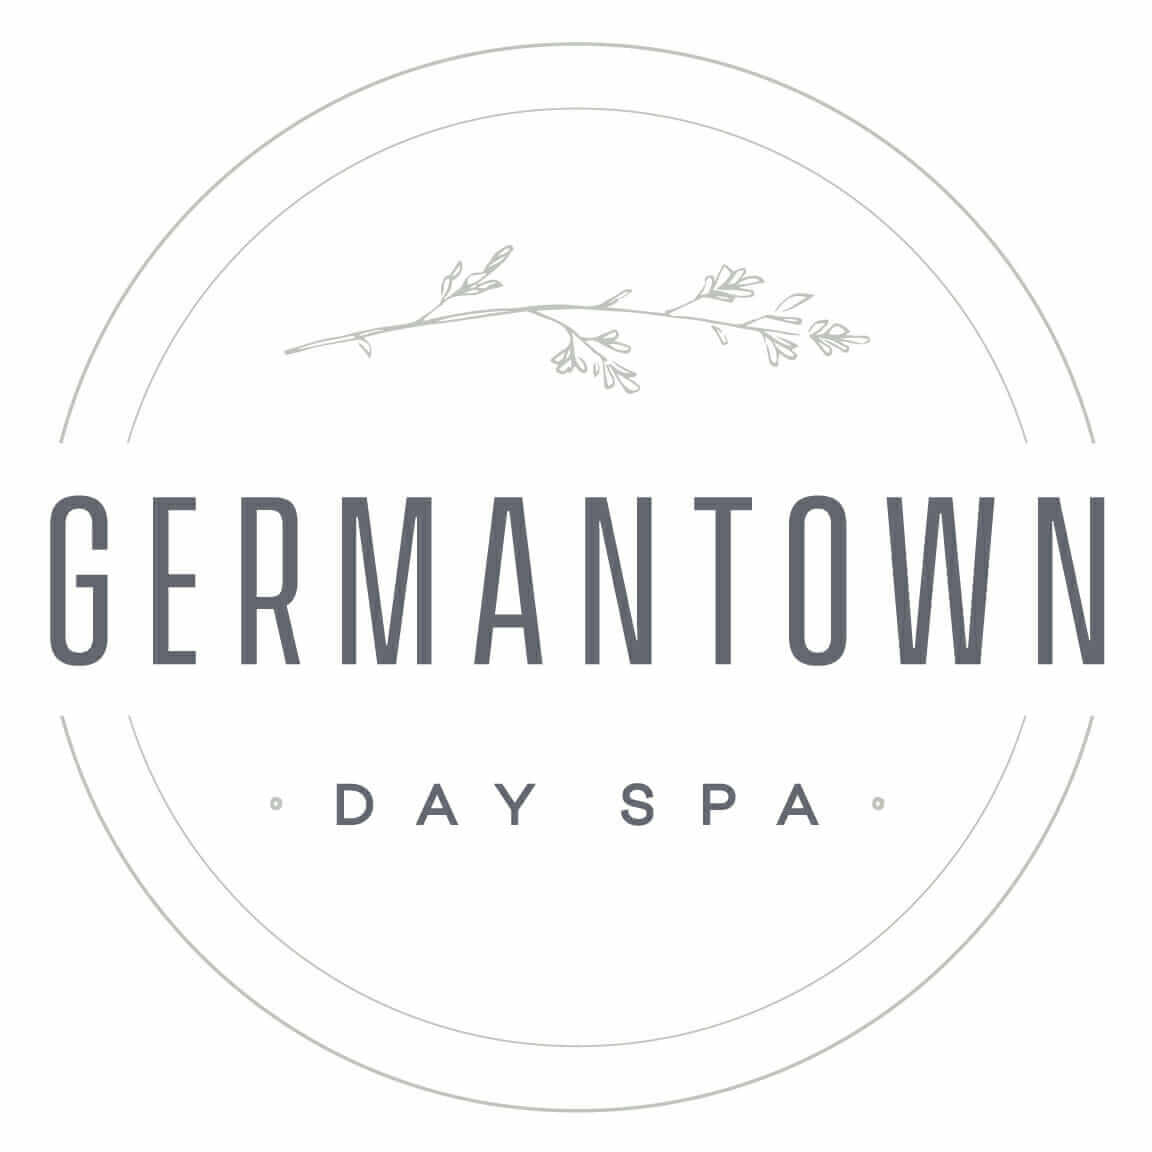 Day Spa - Germantown Day Spa